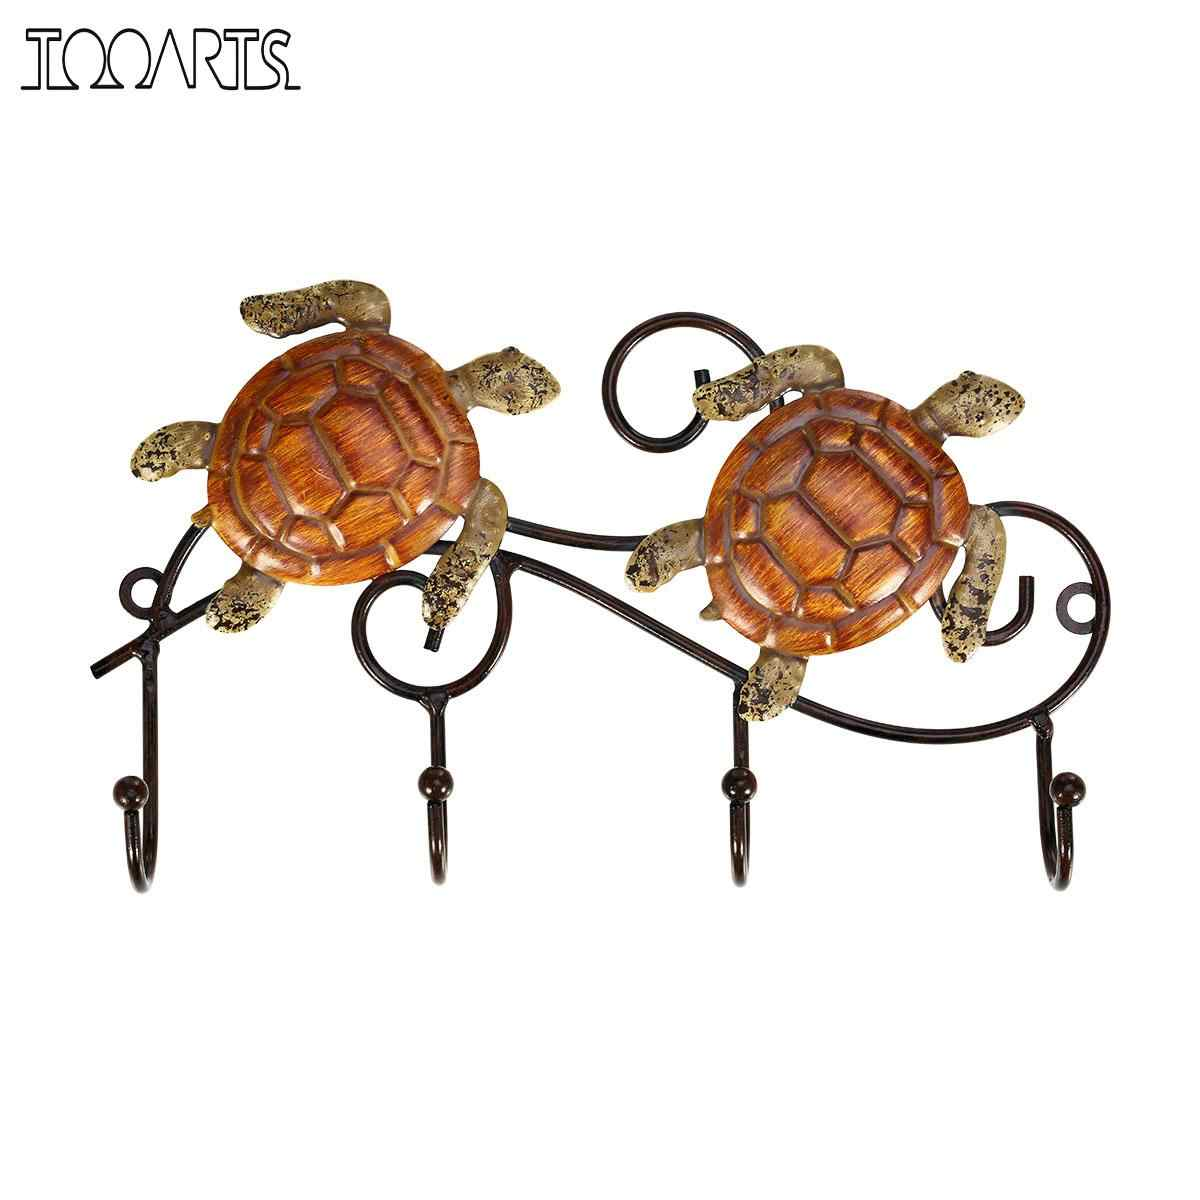 Tooarts Iron Wall Hanger Vintage Design with 4 Hooks Coats Keys Bags Coats Hanger Wall Mounted Home Decoration Animal Figurines